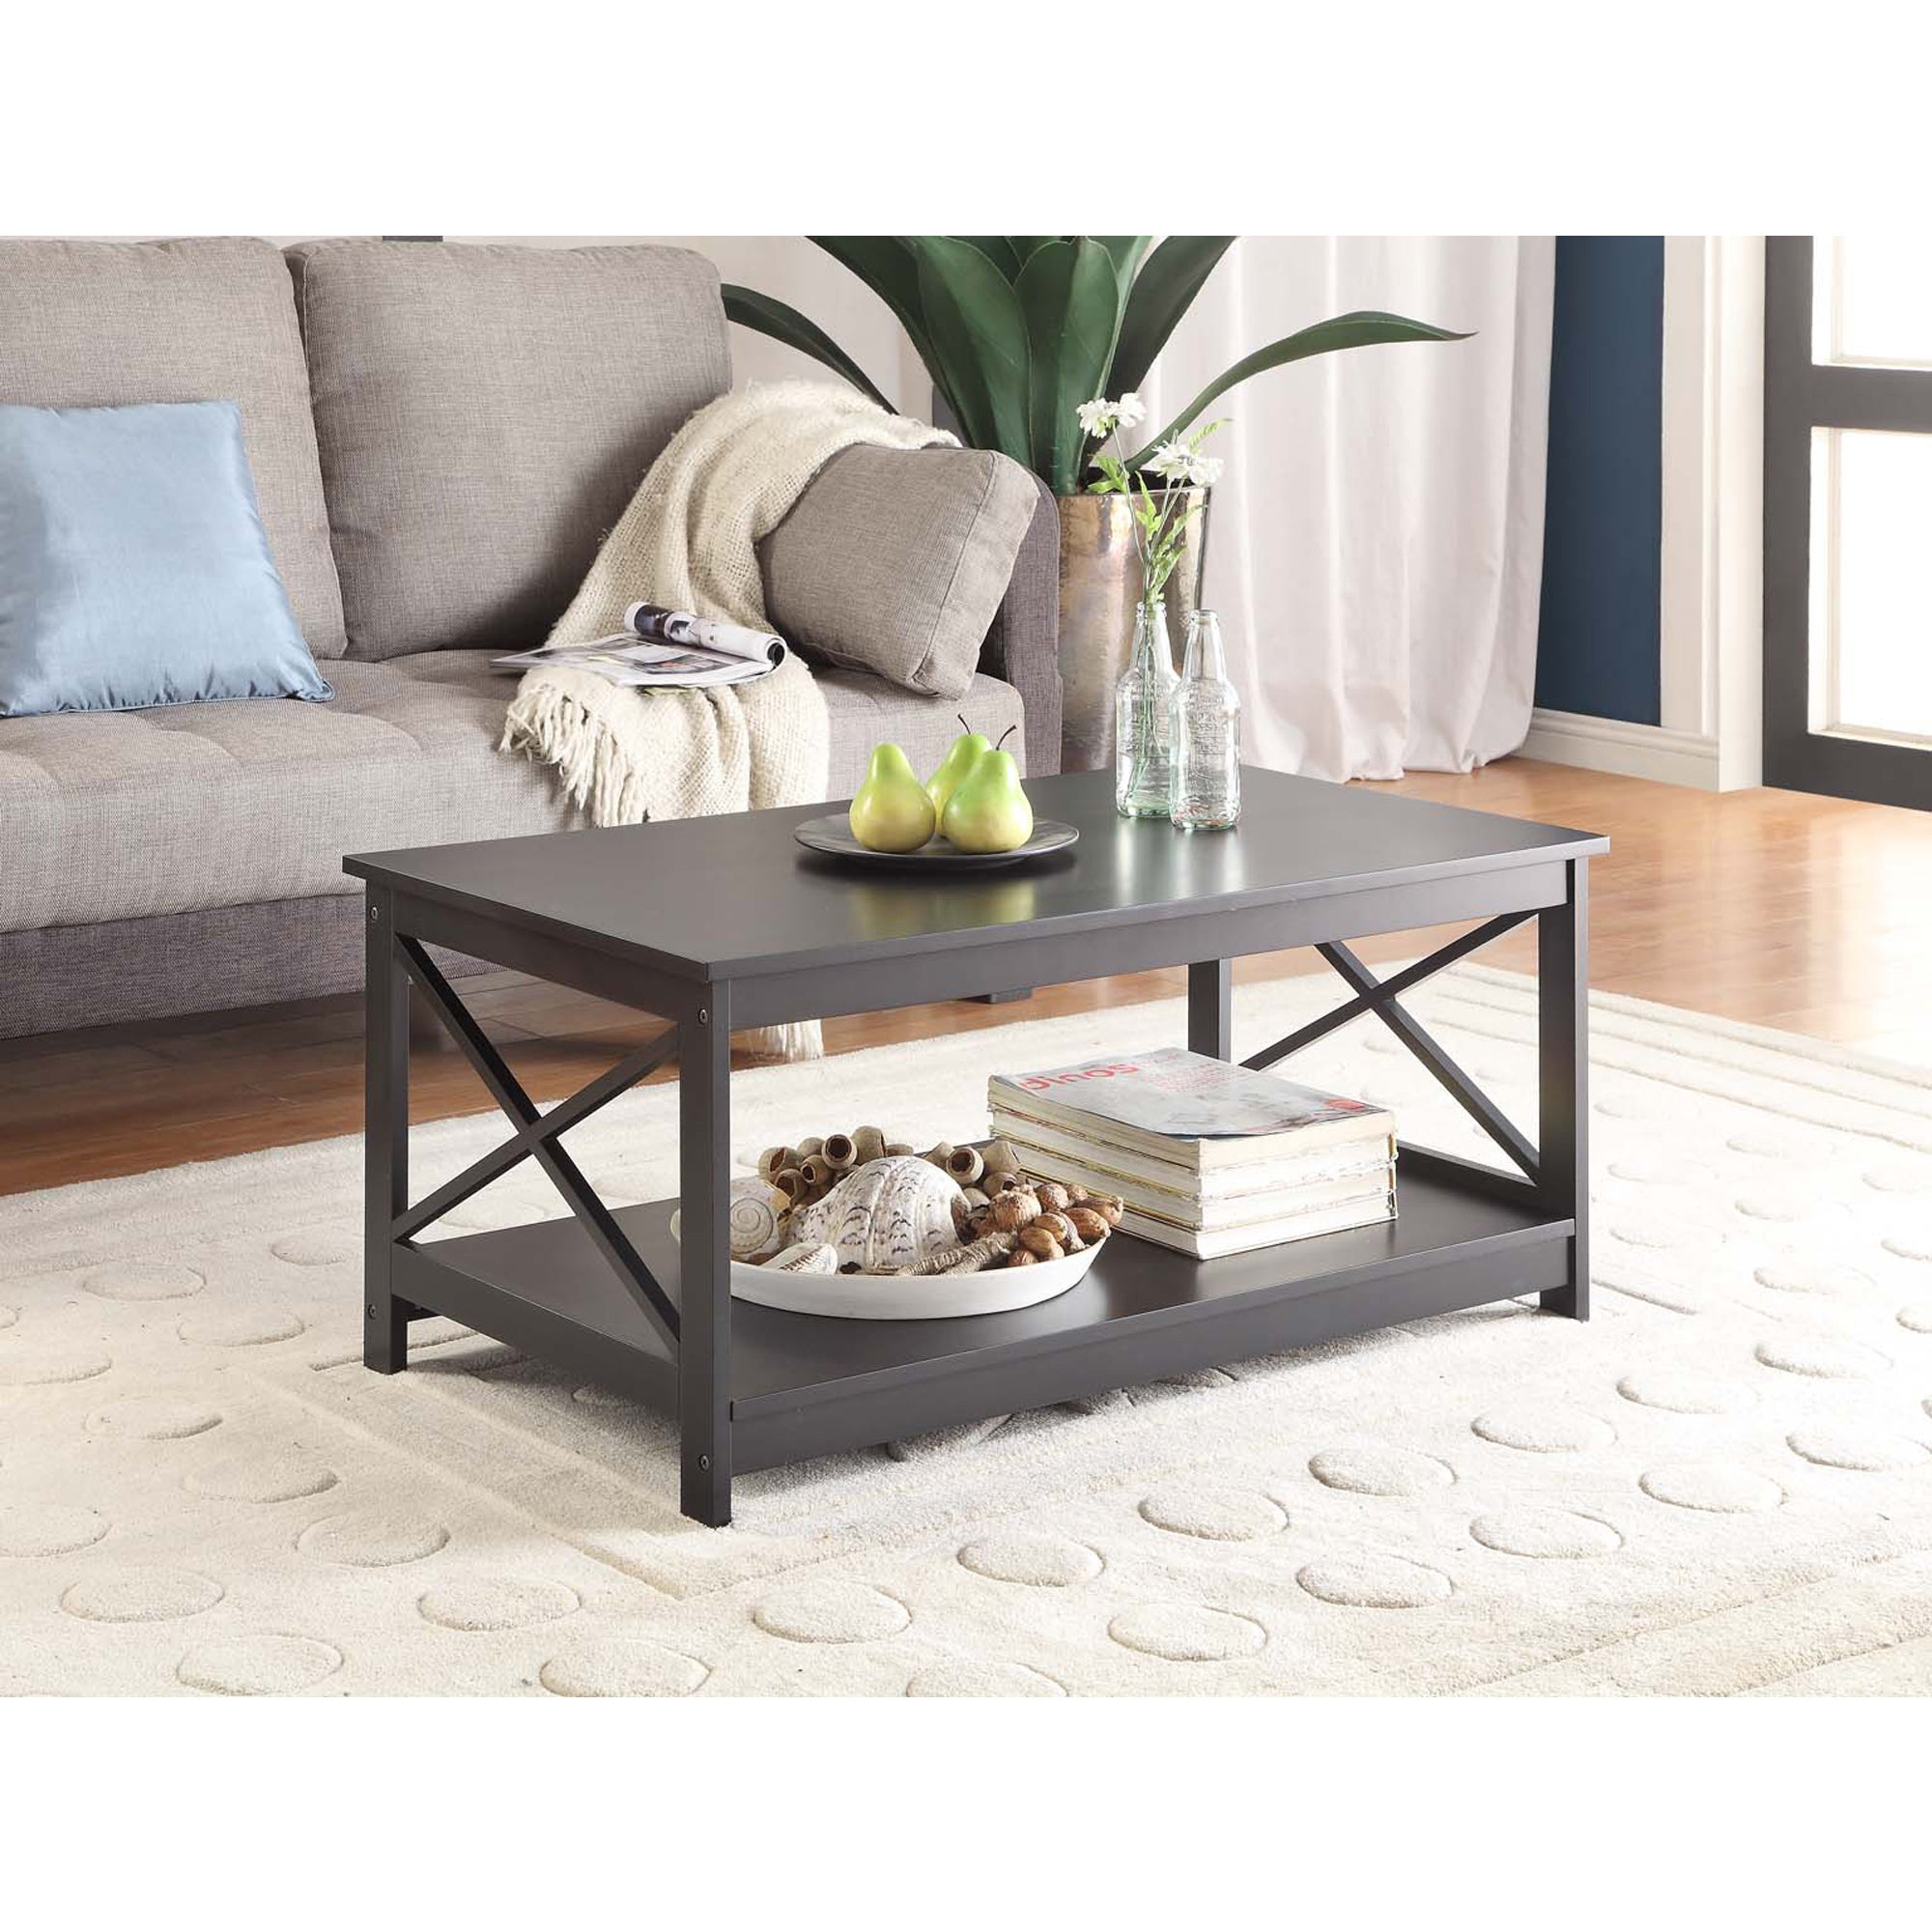 bywater dauphine coffee table - free shipping on orders over $45